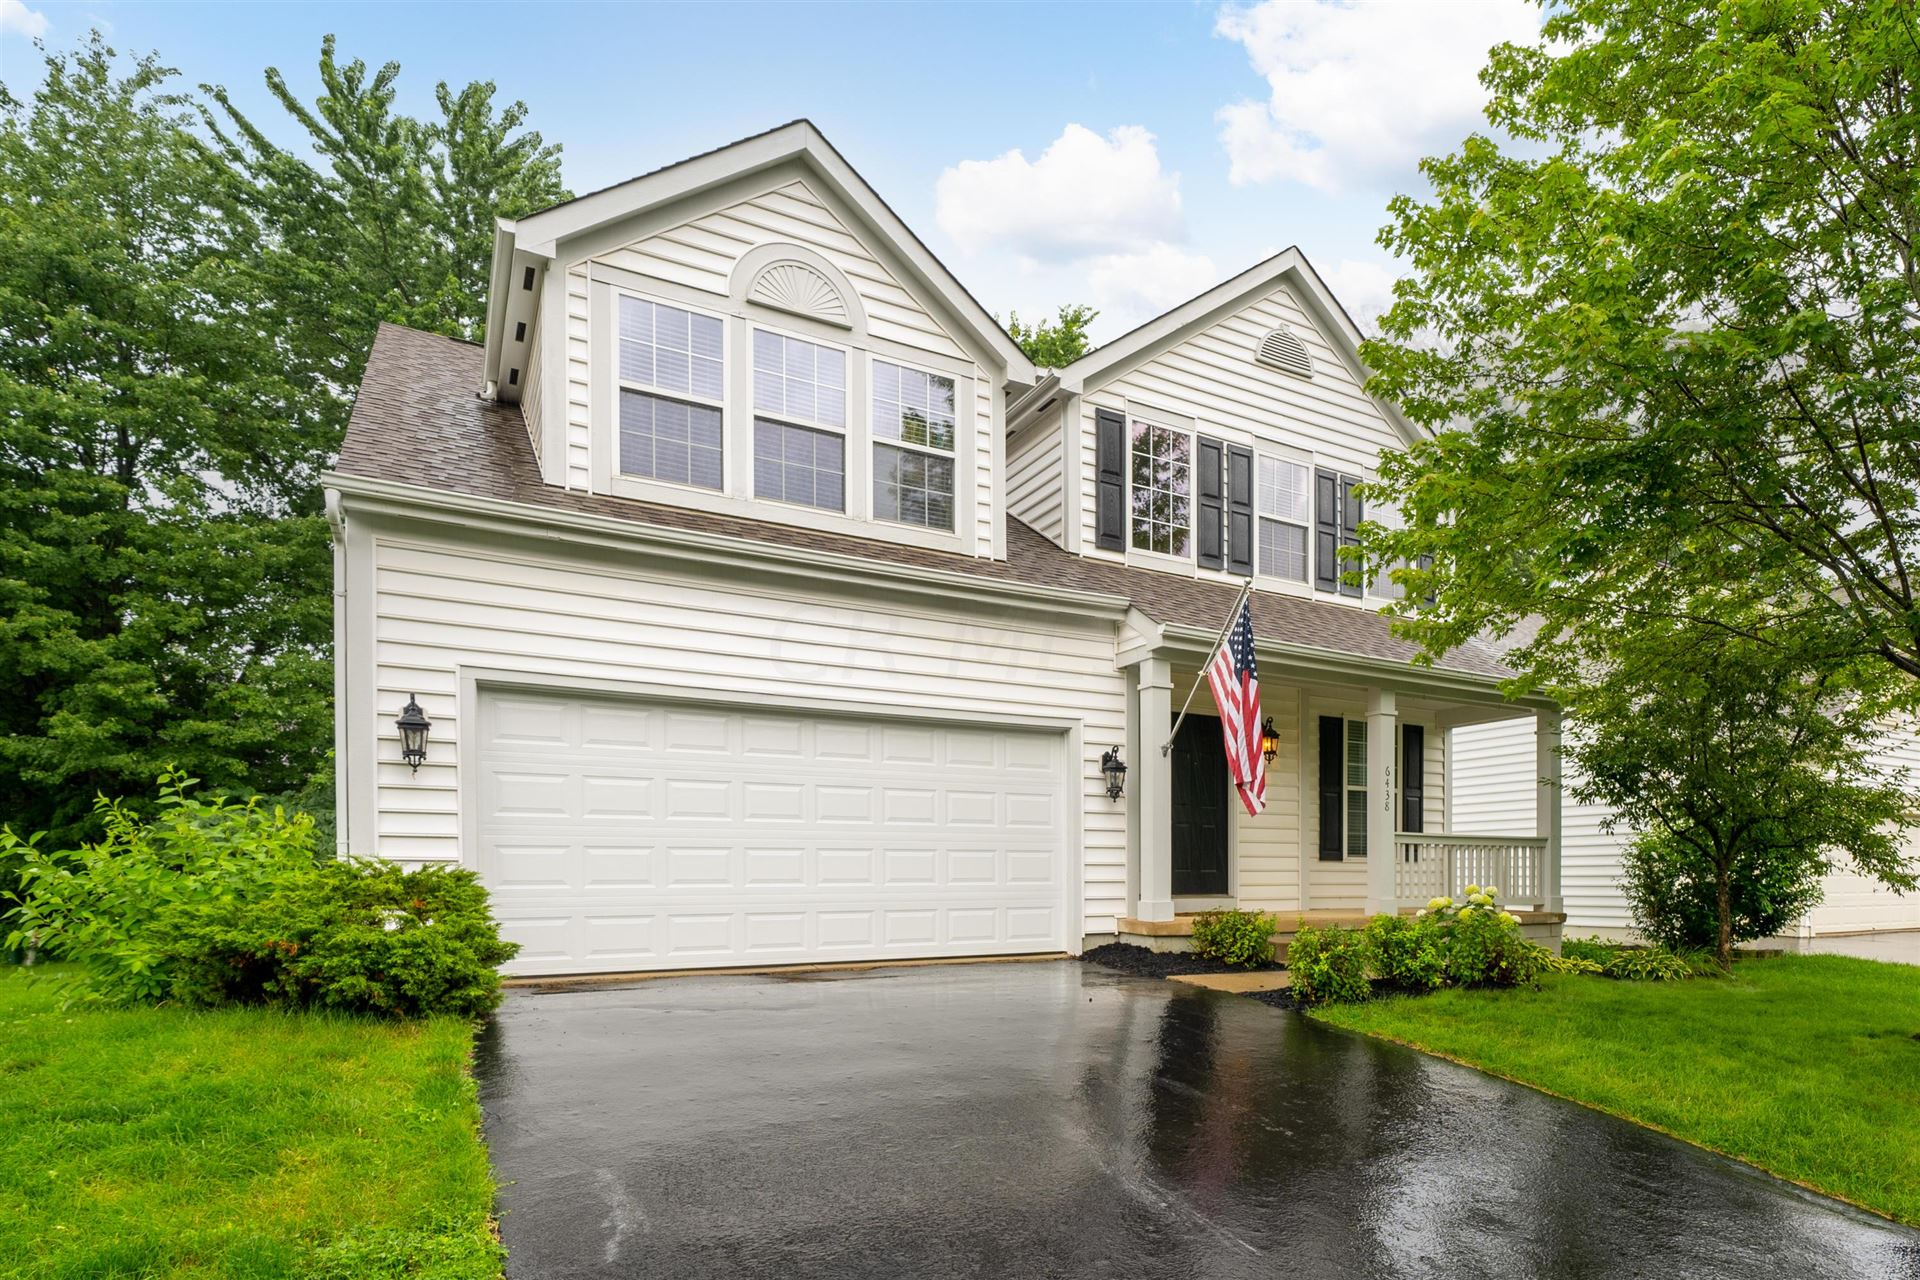 Photo for 6438 Ellis Nook Drive, New Albany, OH 43054 (MLS # 221017190)